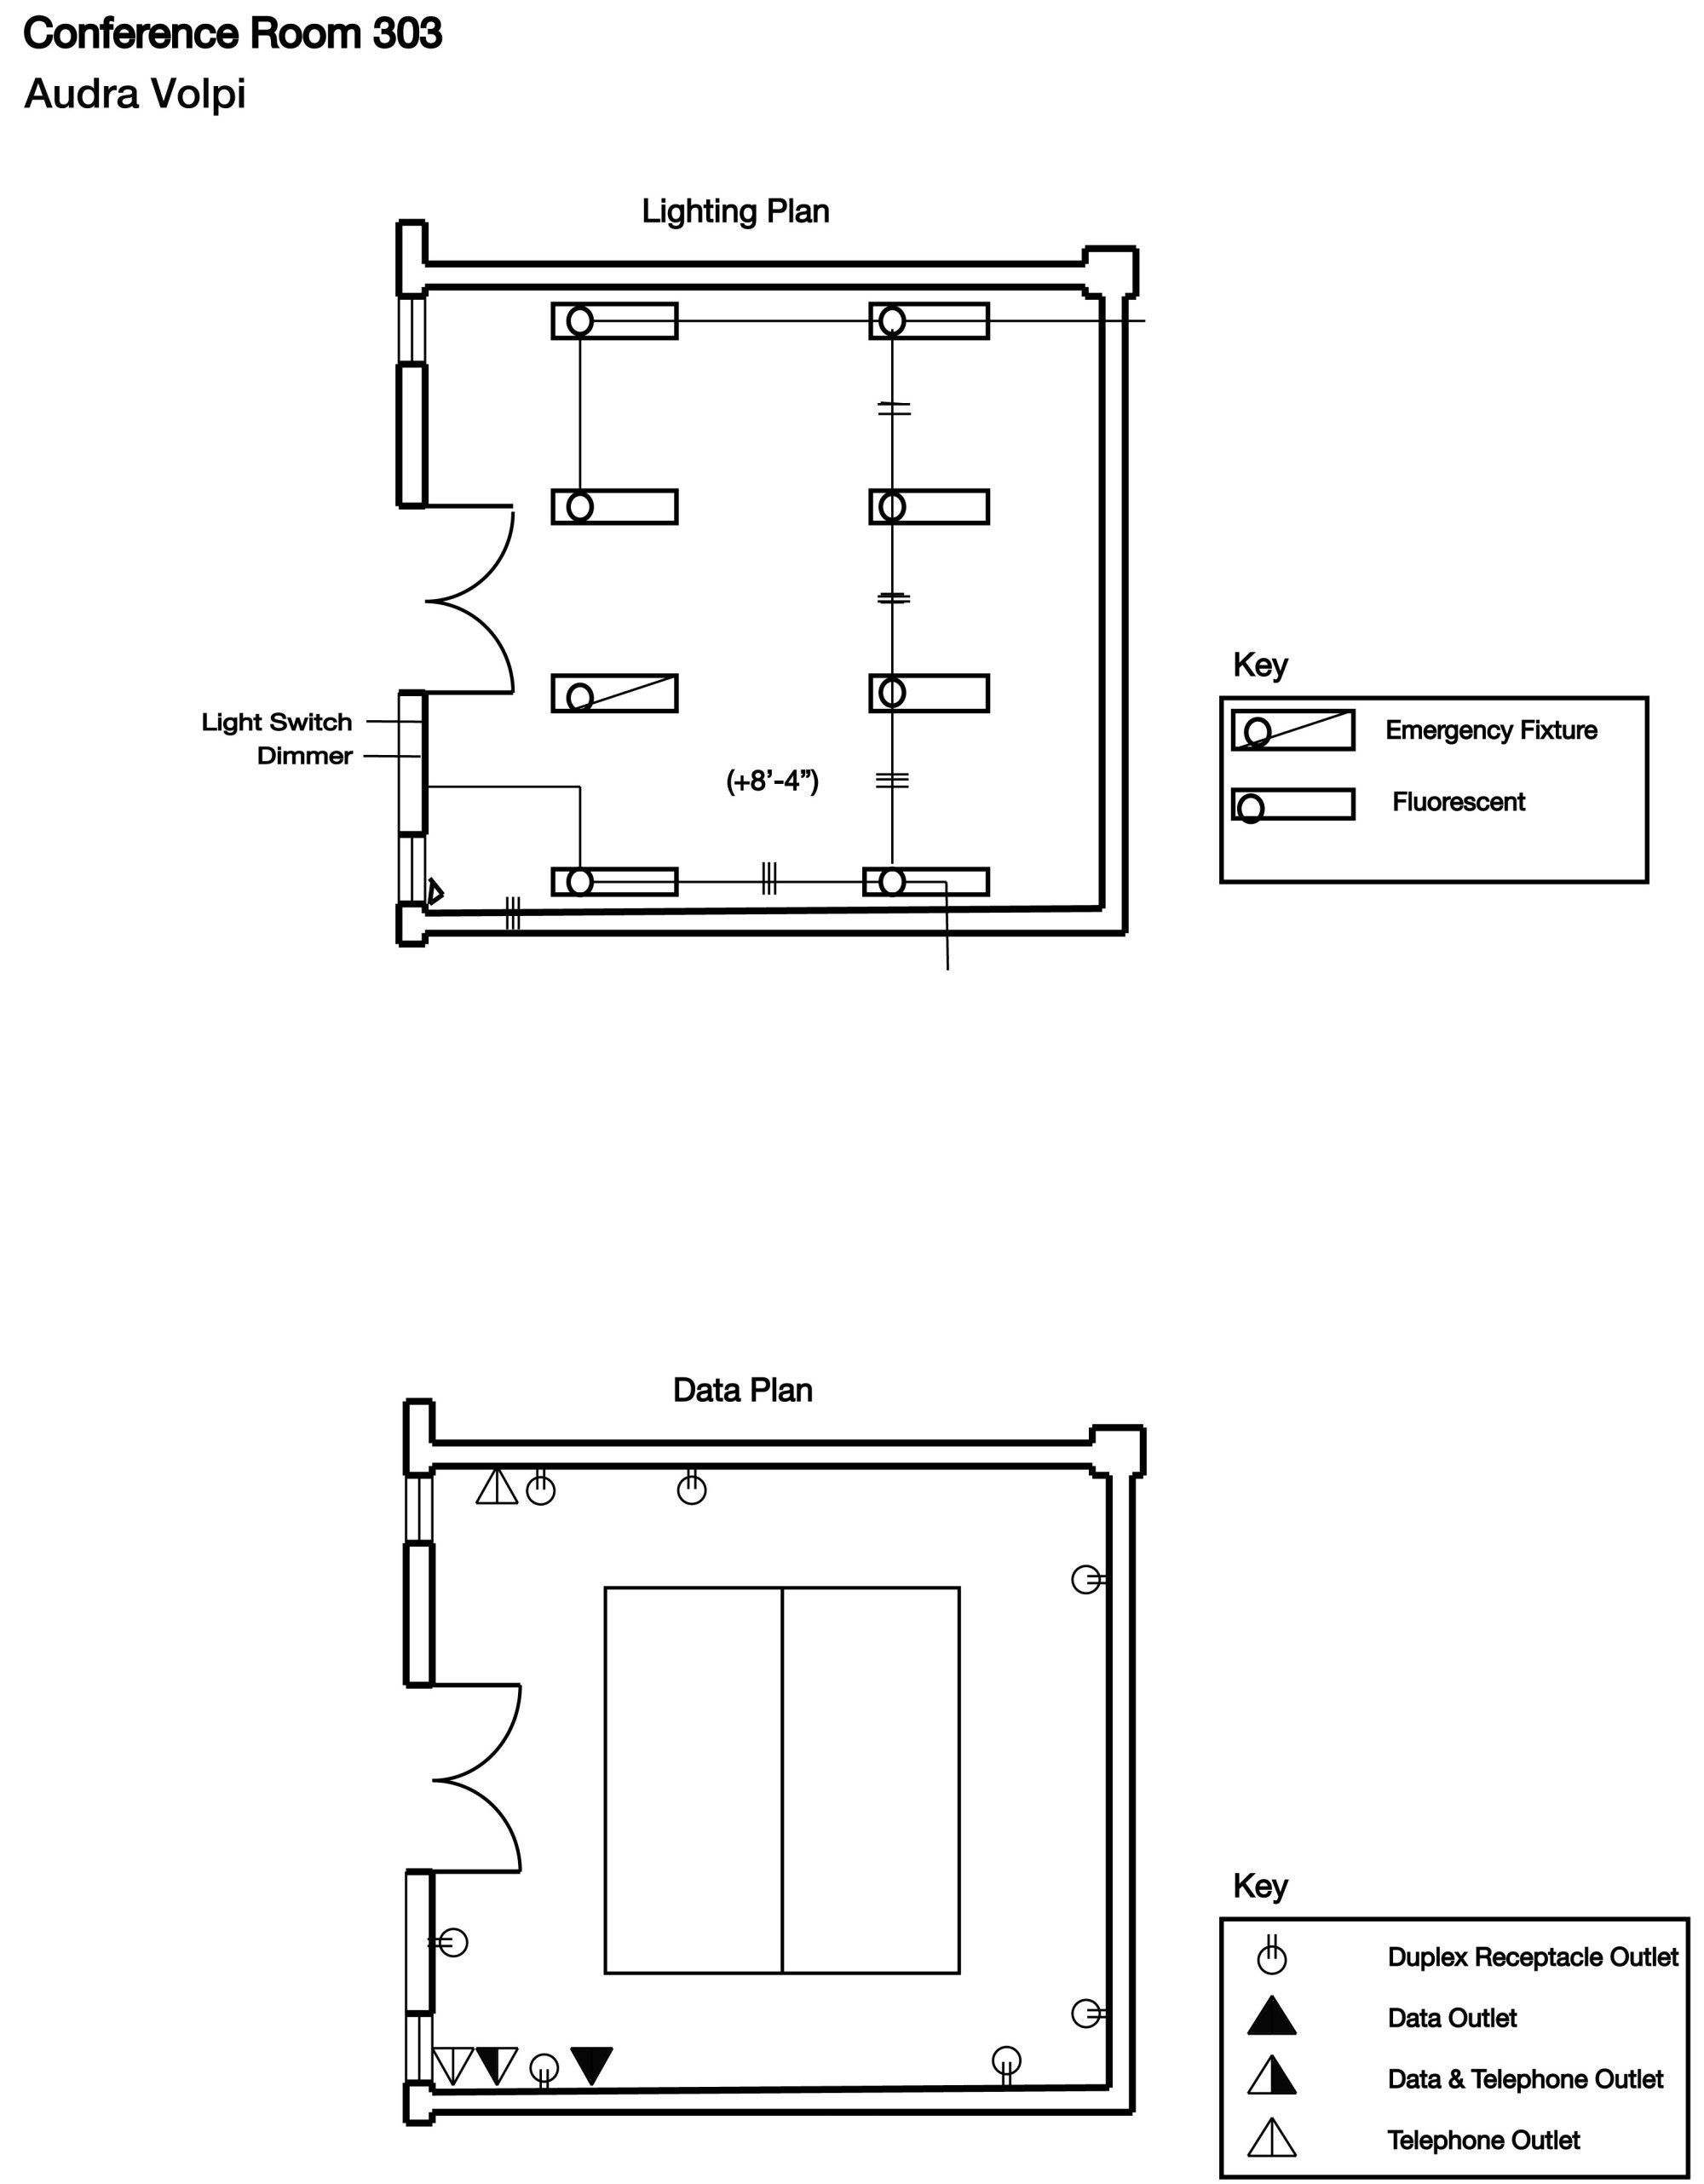 hight resolution of lighting and data plan 5 5 conference room audra volpi stage lighting diagram lighting in a room diagram